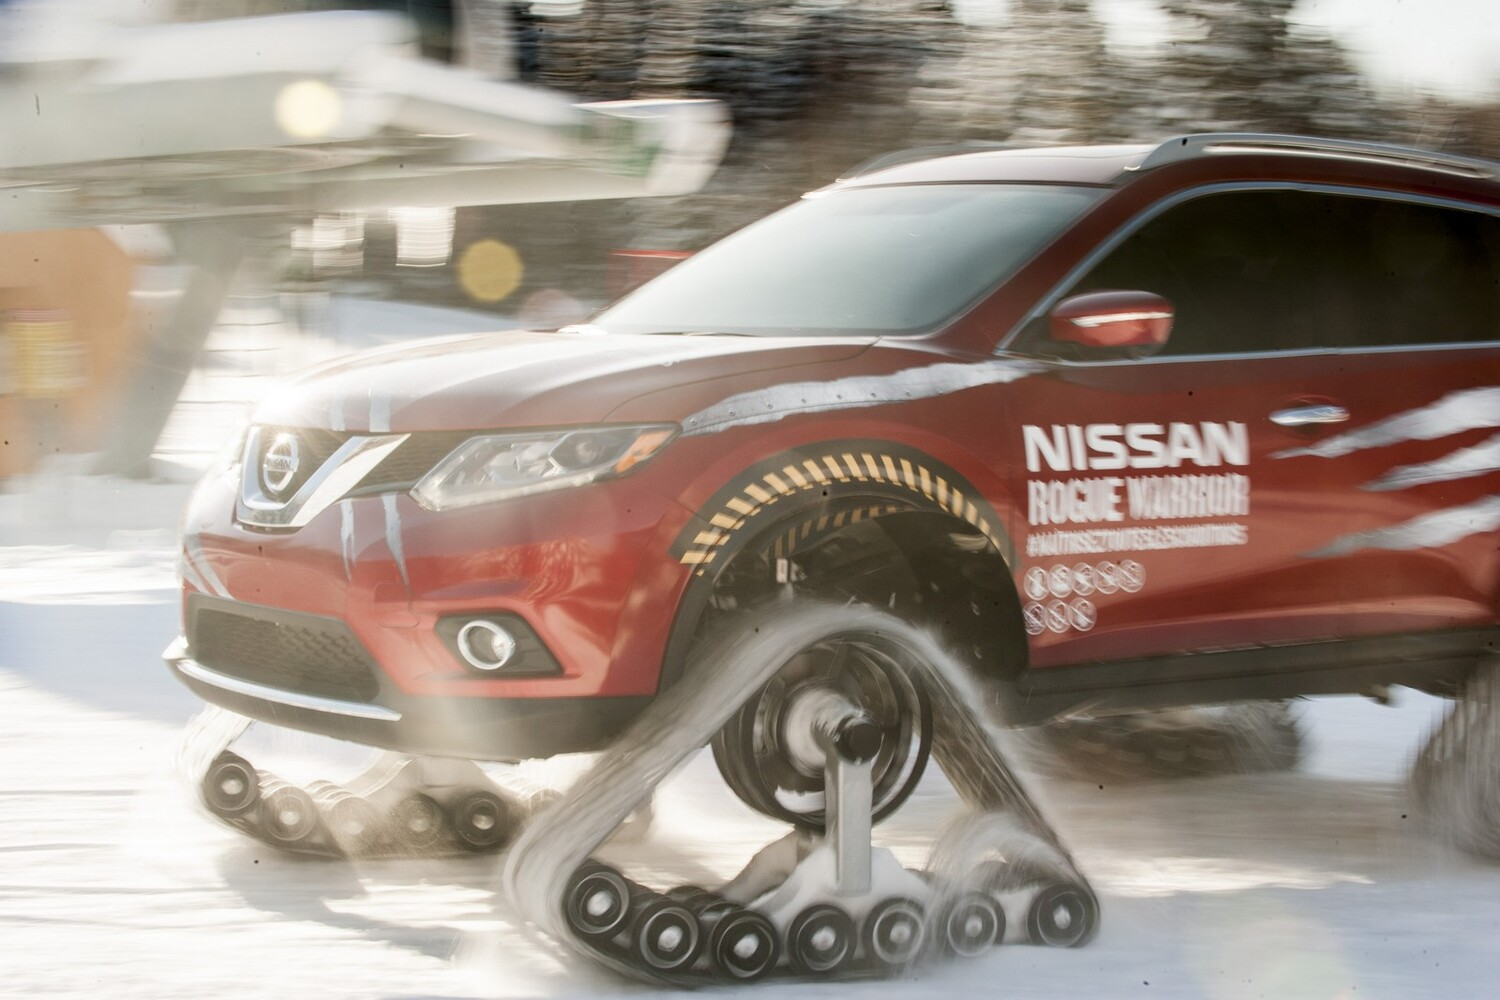 Nissan Rogue Warrior concept: l'inarrestabile?